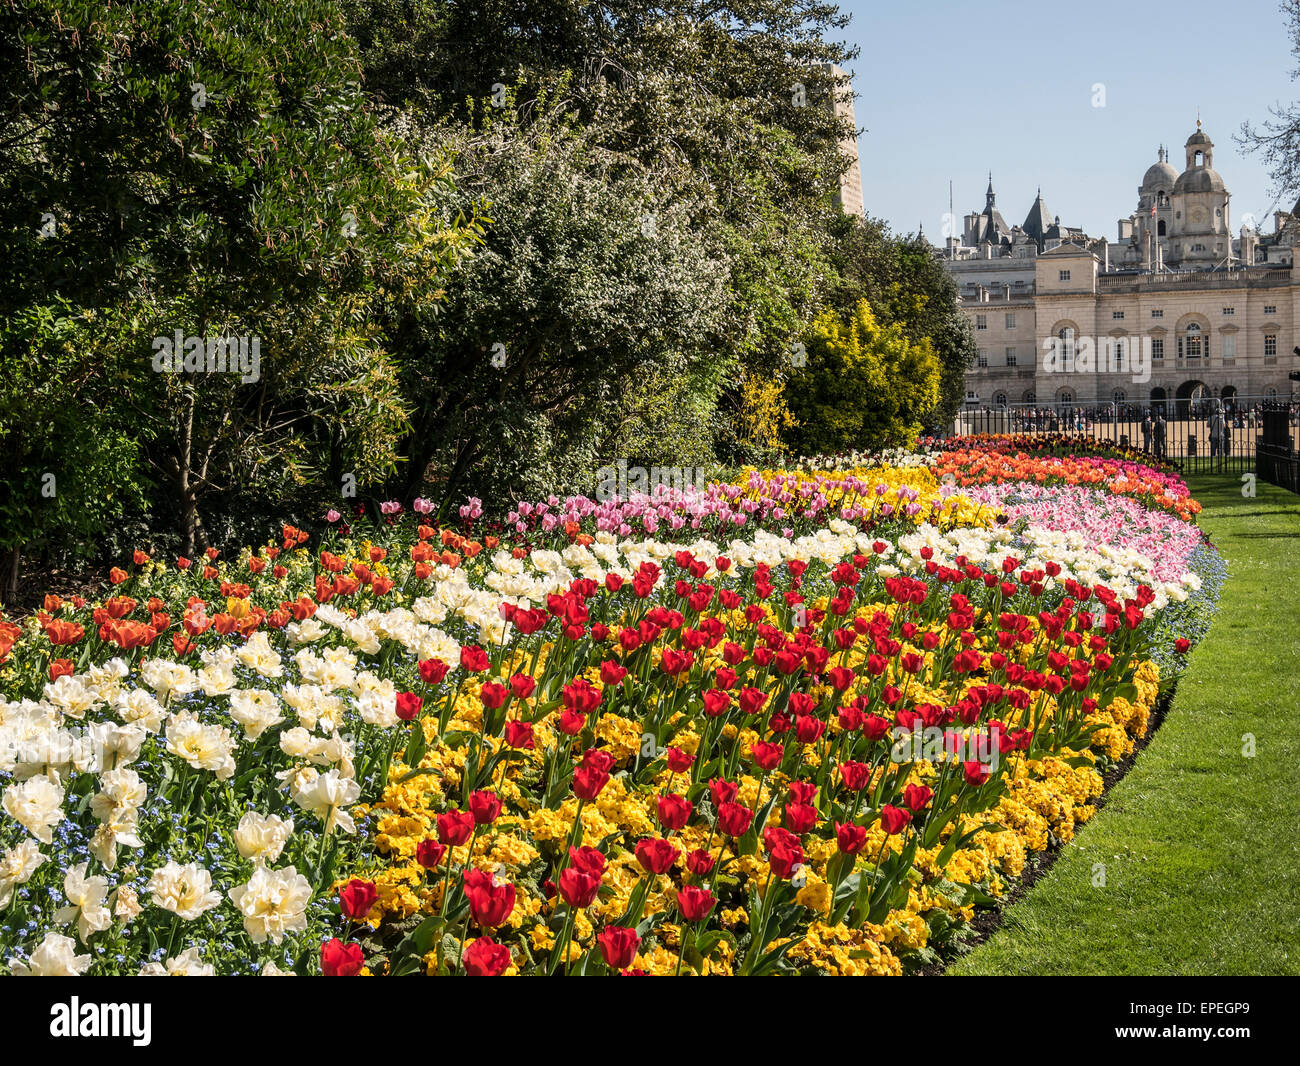 Spring Flower Display In St James Park London Uk Stock Photo